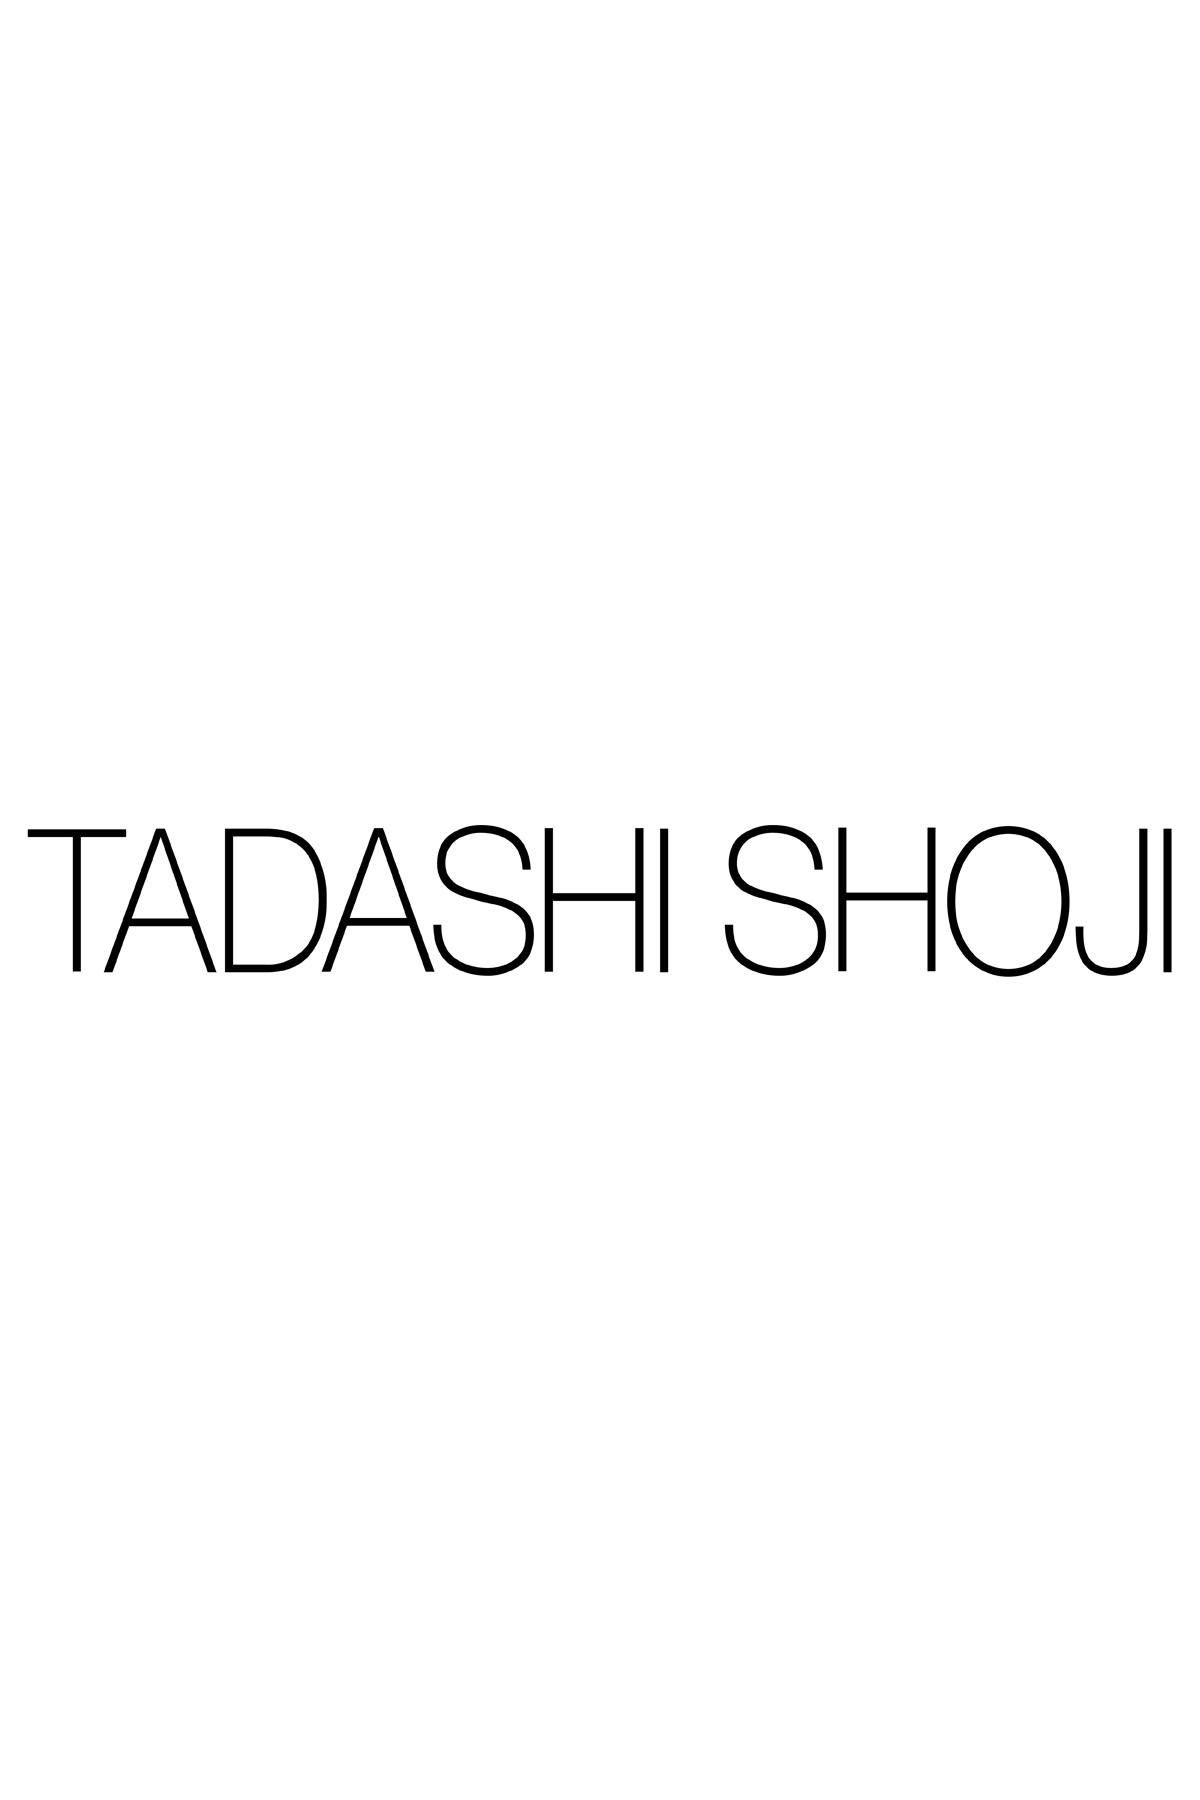 Tadashi Shoji - Queen Anne Neckline Corded Embroidery On Tulle Dress